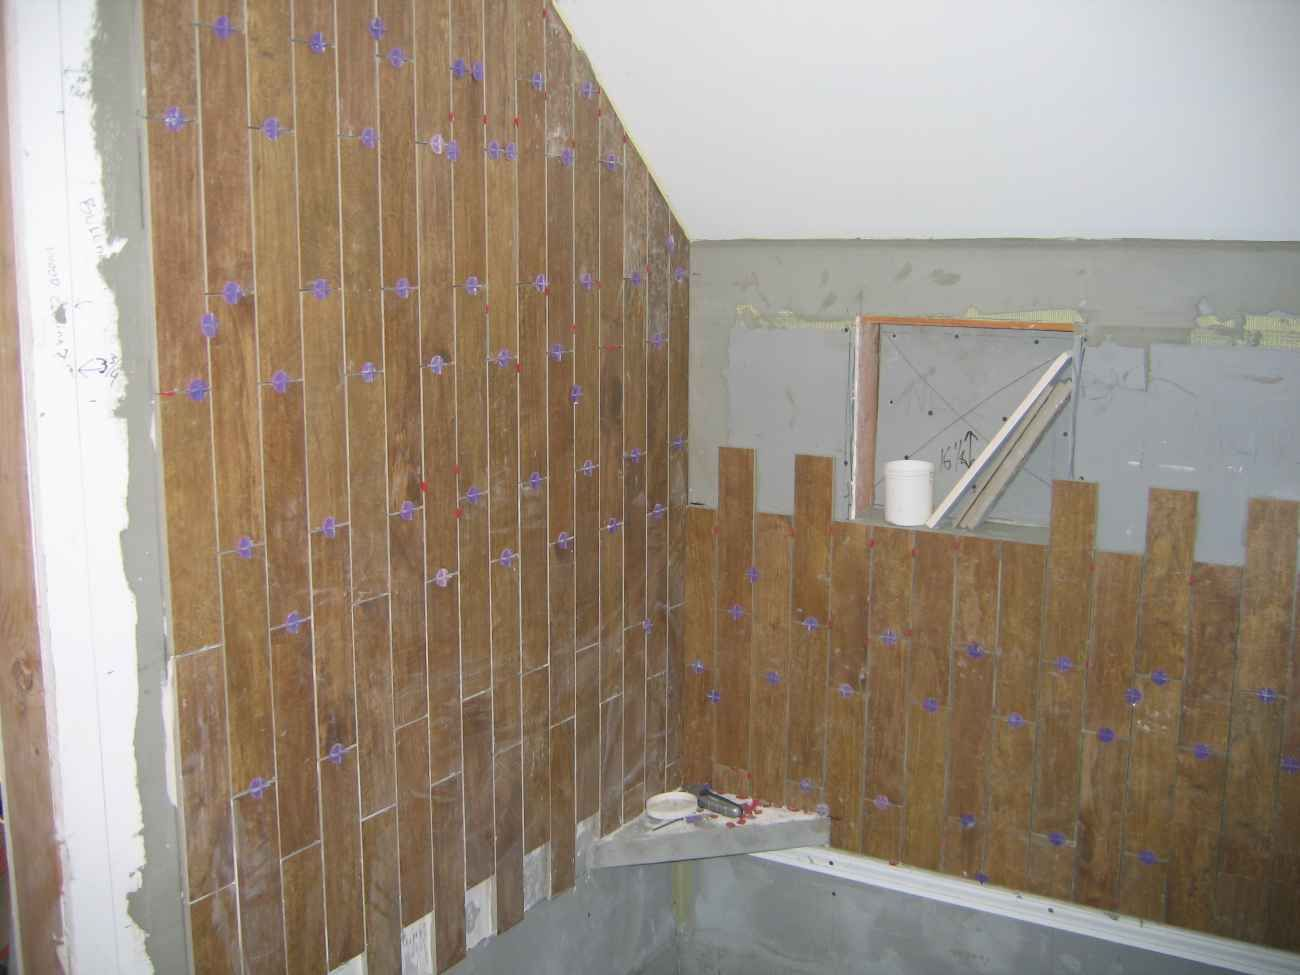 Shower Tile That Looks Like Weathered Wood Simple Wood Ceramic Tile For Bathroom Wall House